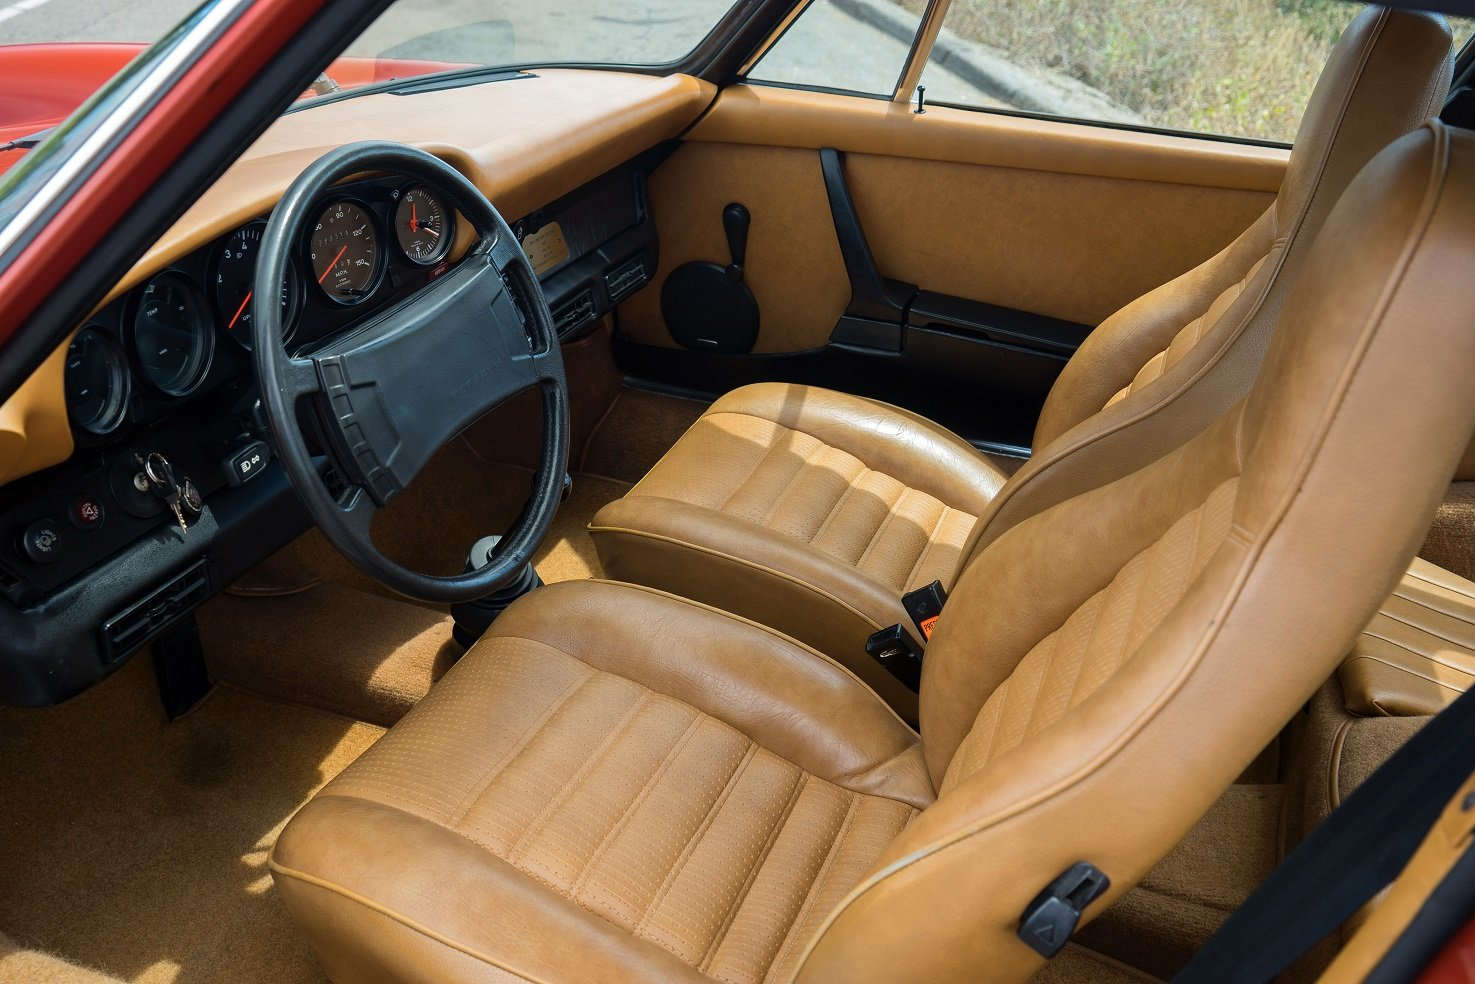 1976 porsche 912 e coupe cars classic wallpaper 1475x984 687519 wallpaperup. Black Bedroom Furniture Sets. Home Design Ideas